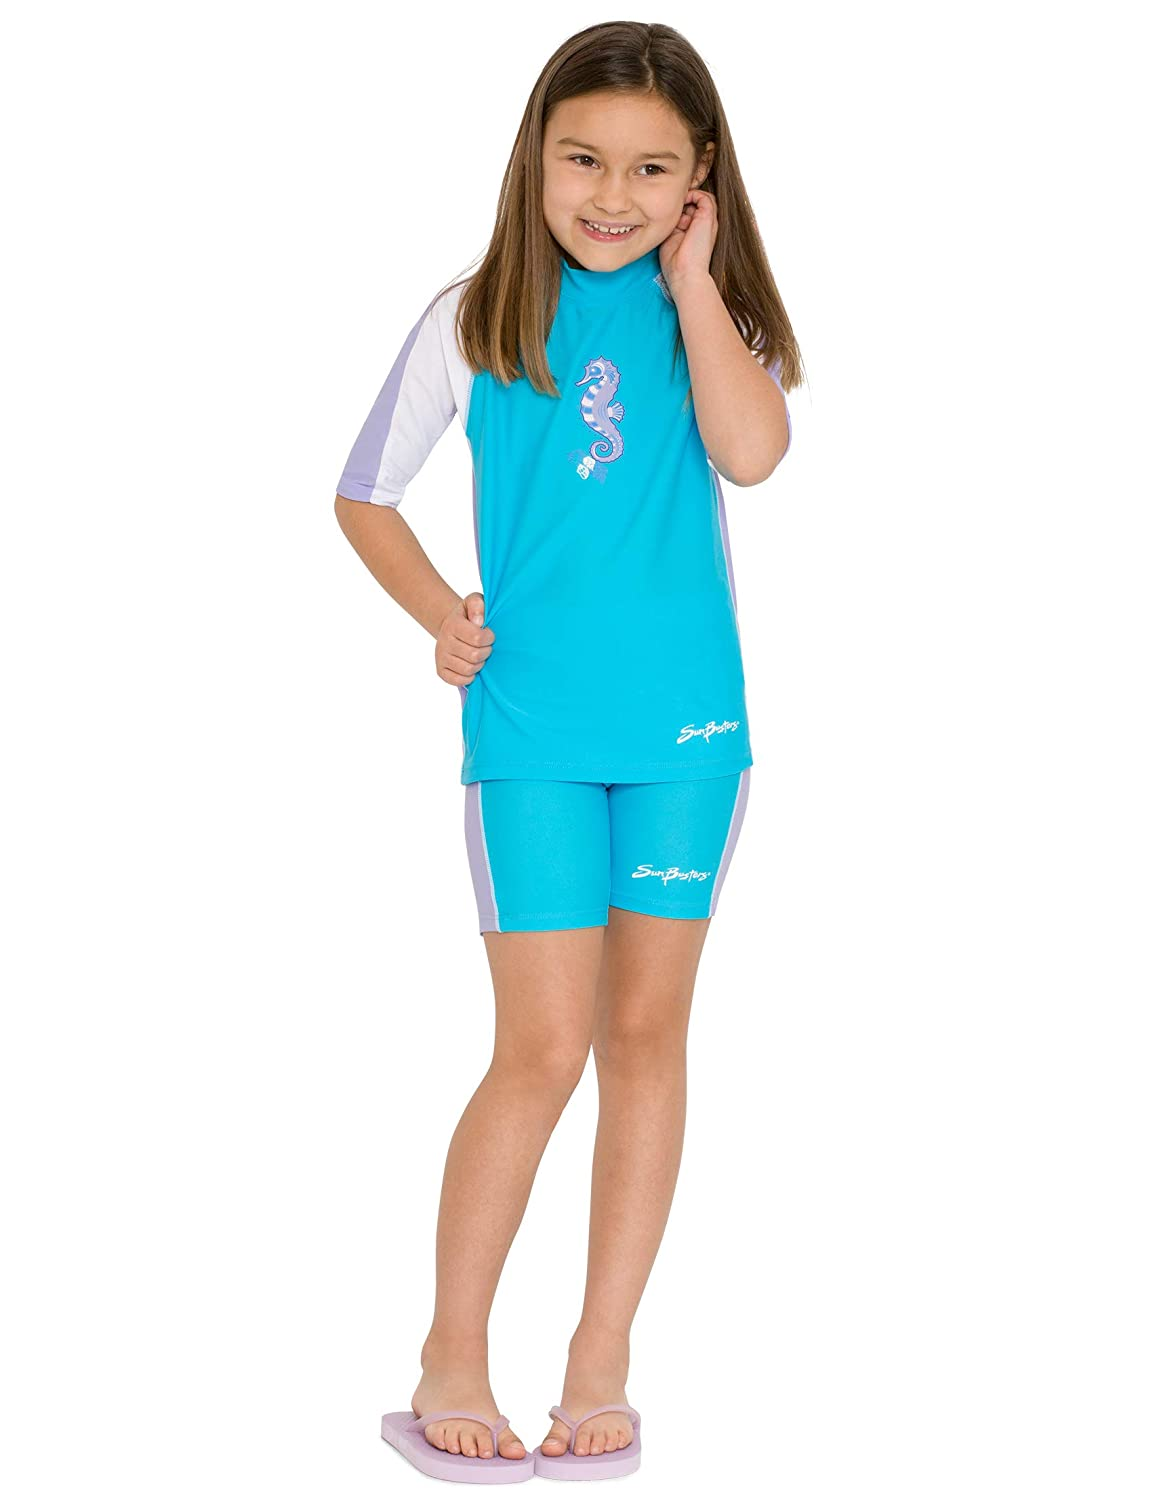 51c4b81d4a61 Amazon.com: SunBusters Girls Swim Shorts 12 mos - 12 yrs, UPF 50+ Sun  Protection: Clothing